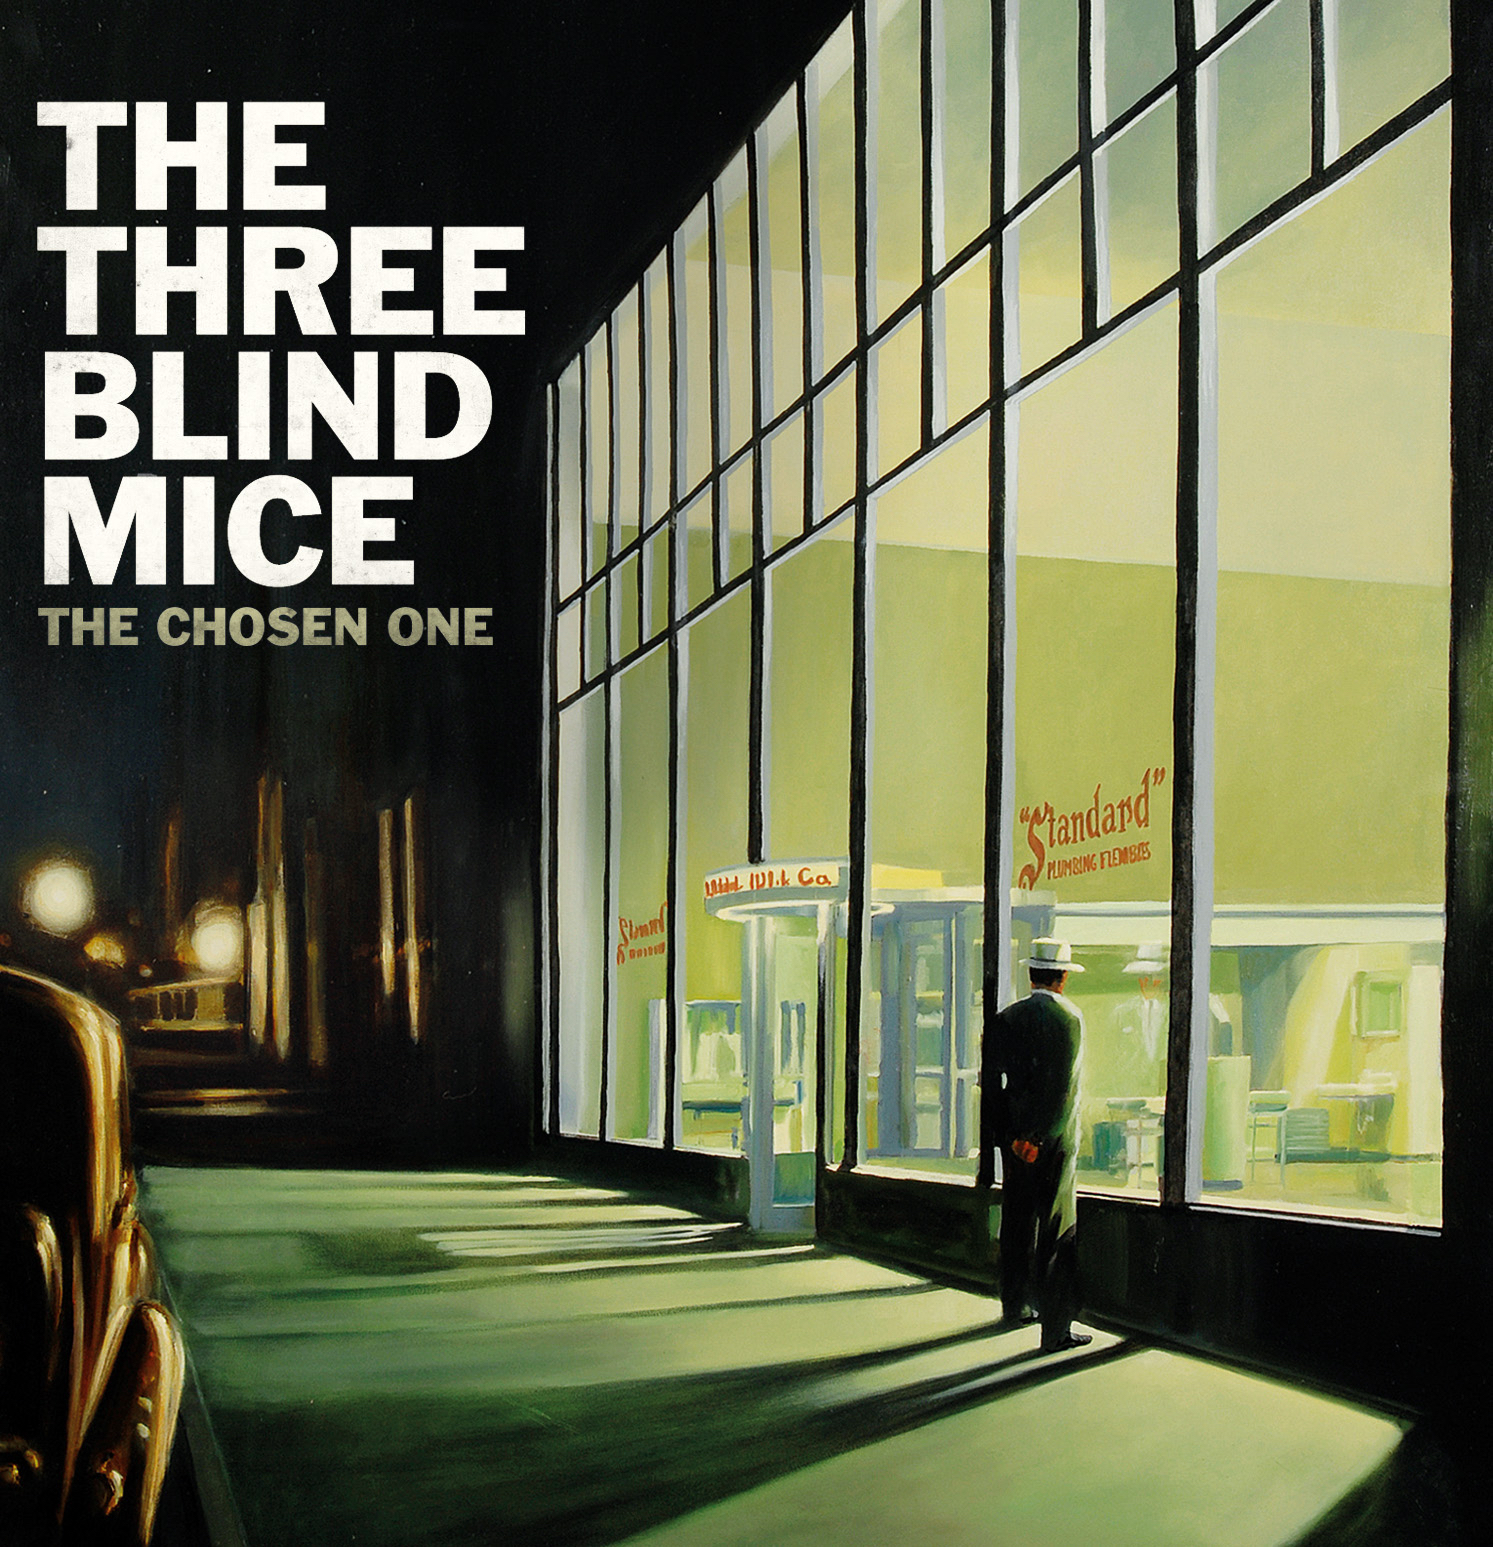 three blind mice - The-Chosen-One